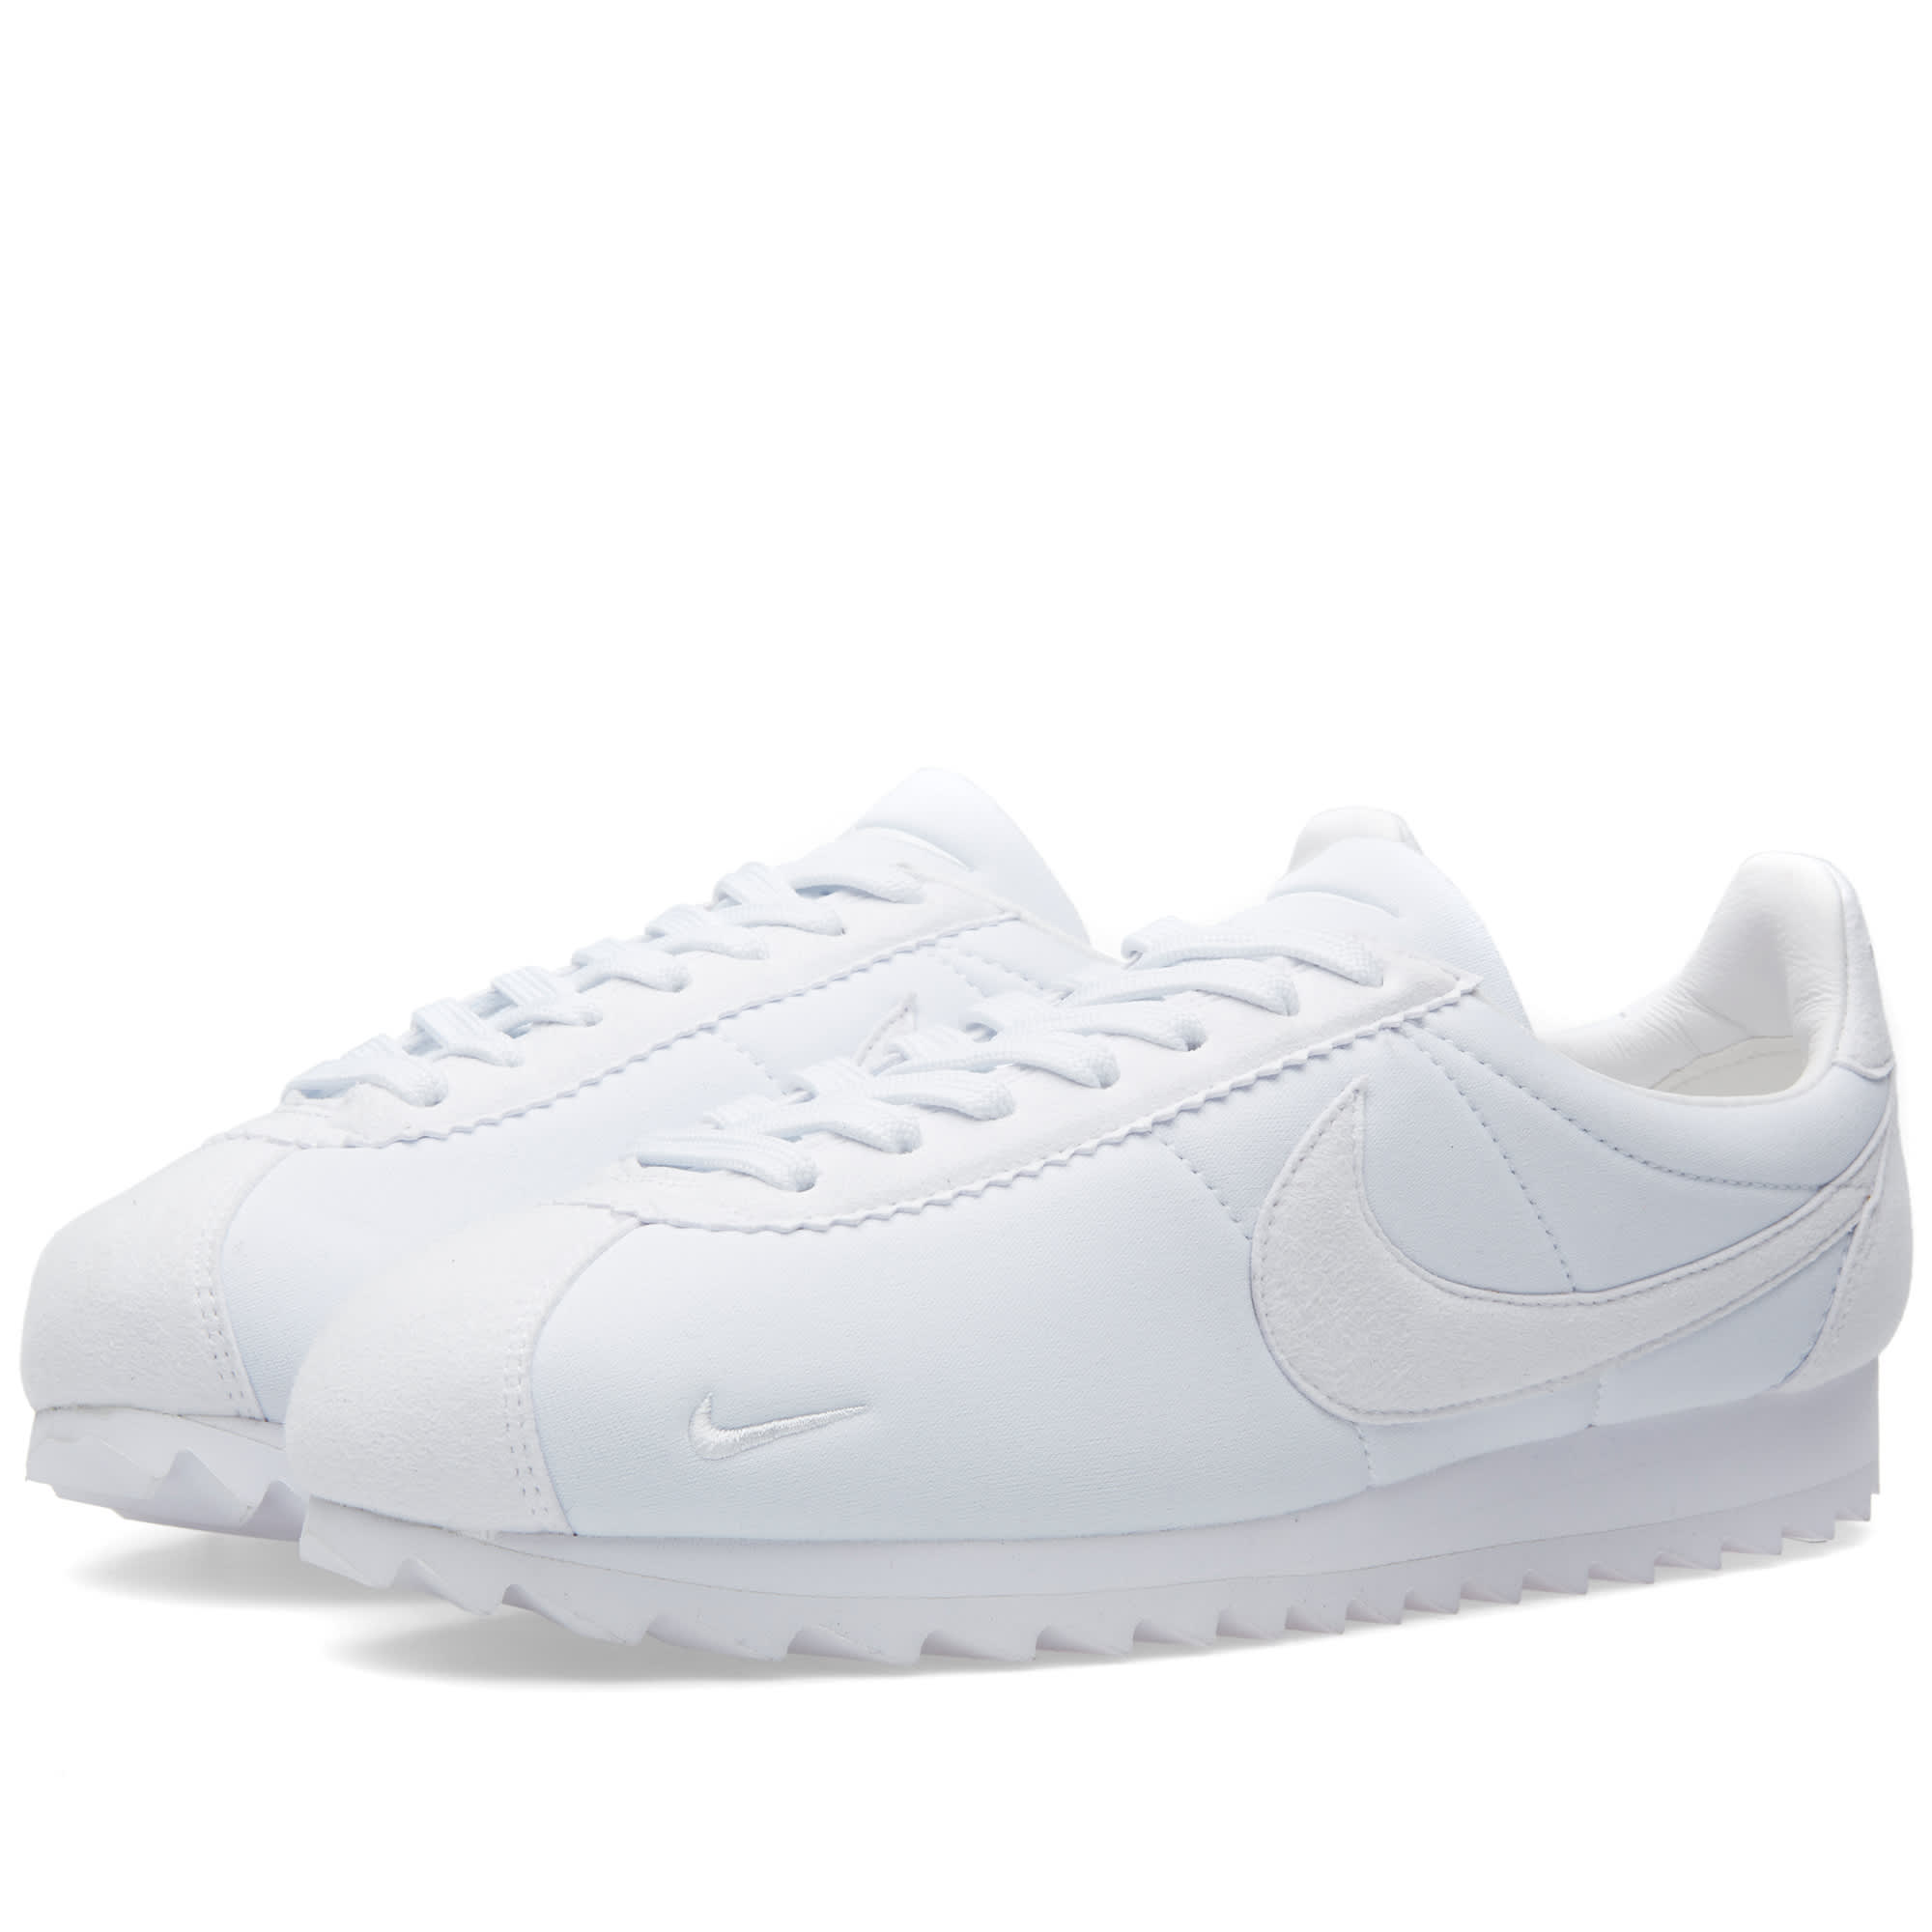 2015 Nike Cortez Big tooth | Nike Cortez's | Sneakers